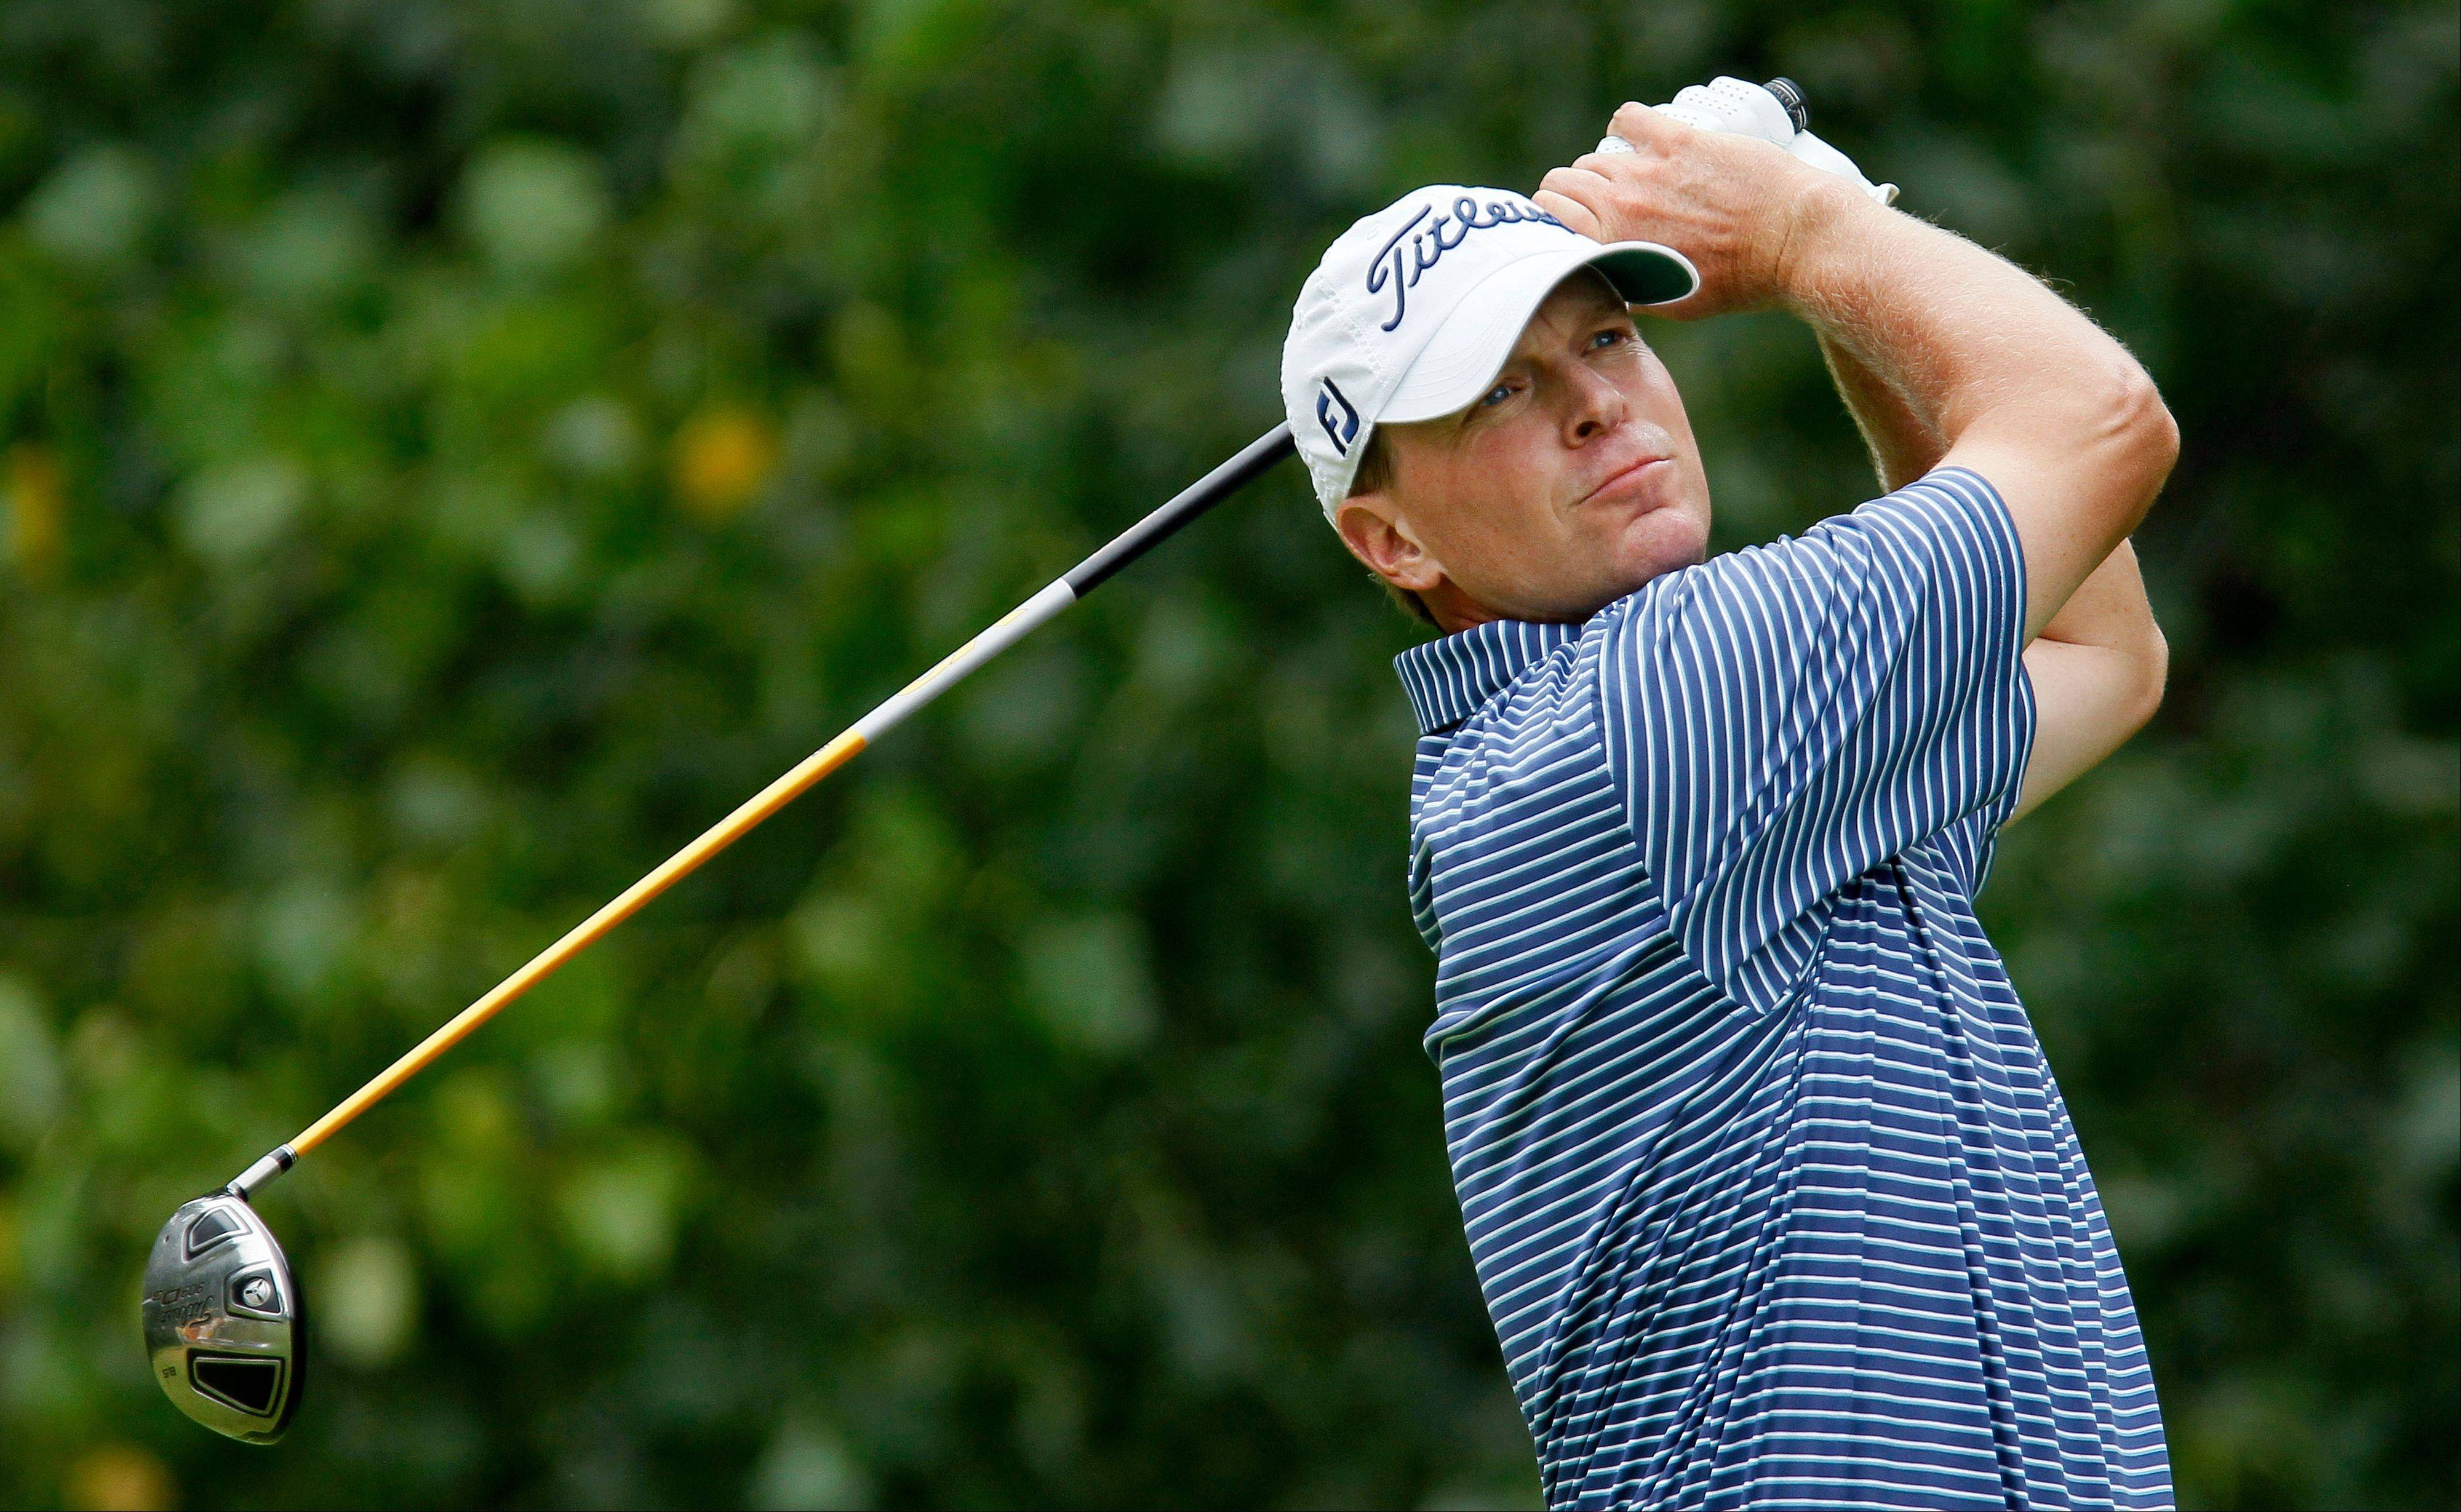 PGA Tour veteran Steve Stricker, a two-time USA Ryder Cup player, will be trying to win his fourth straight John Deere Classic championship this week at TPC Deere Run in Silvis, Ill.